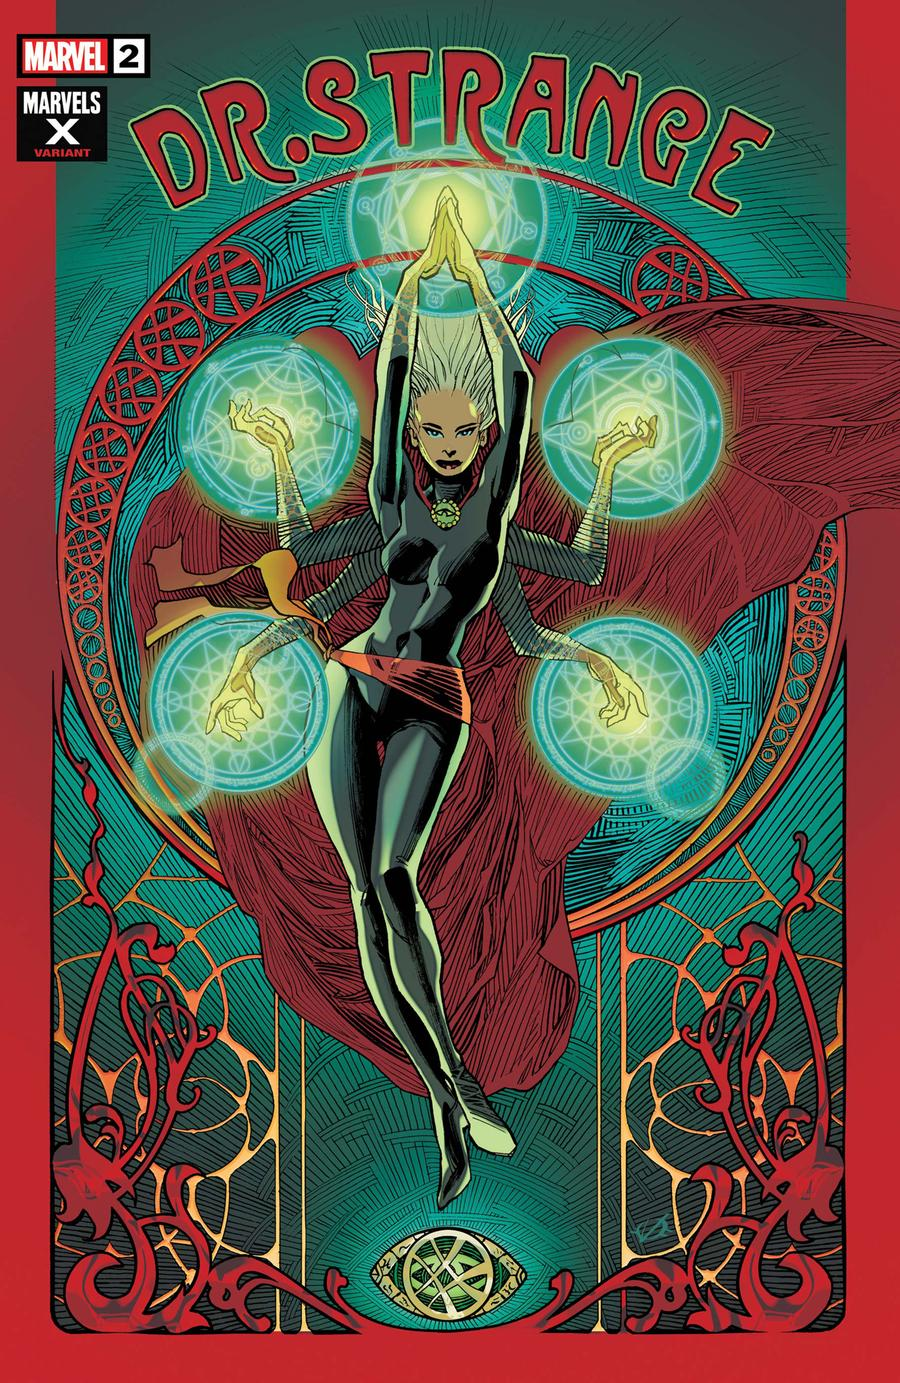 Doctor Strange Surgeon Supreme #2 Cover B Variant Olivier Vatine Marvels X Cover